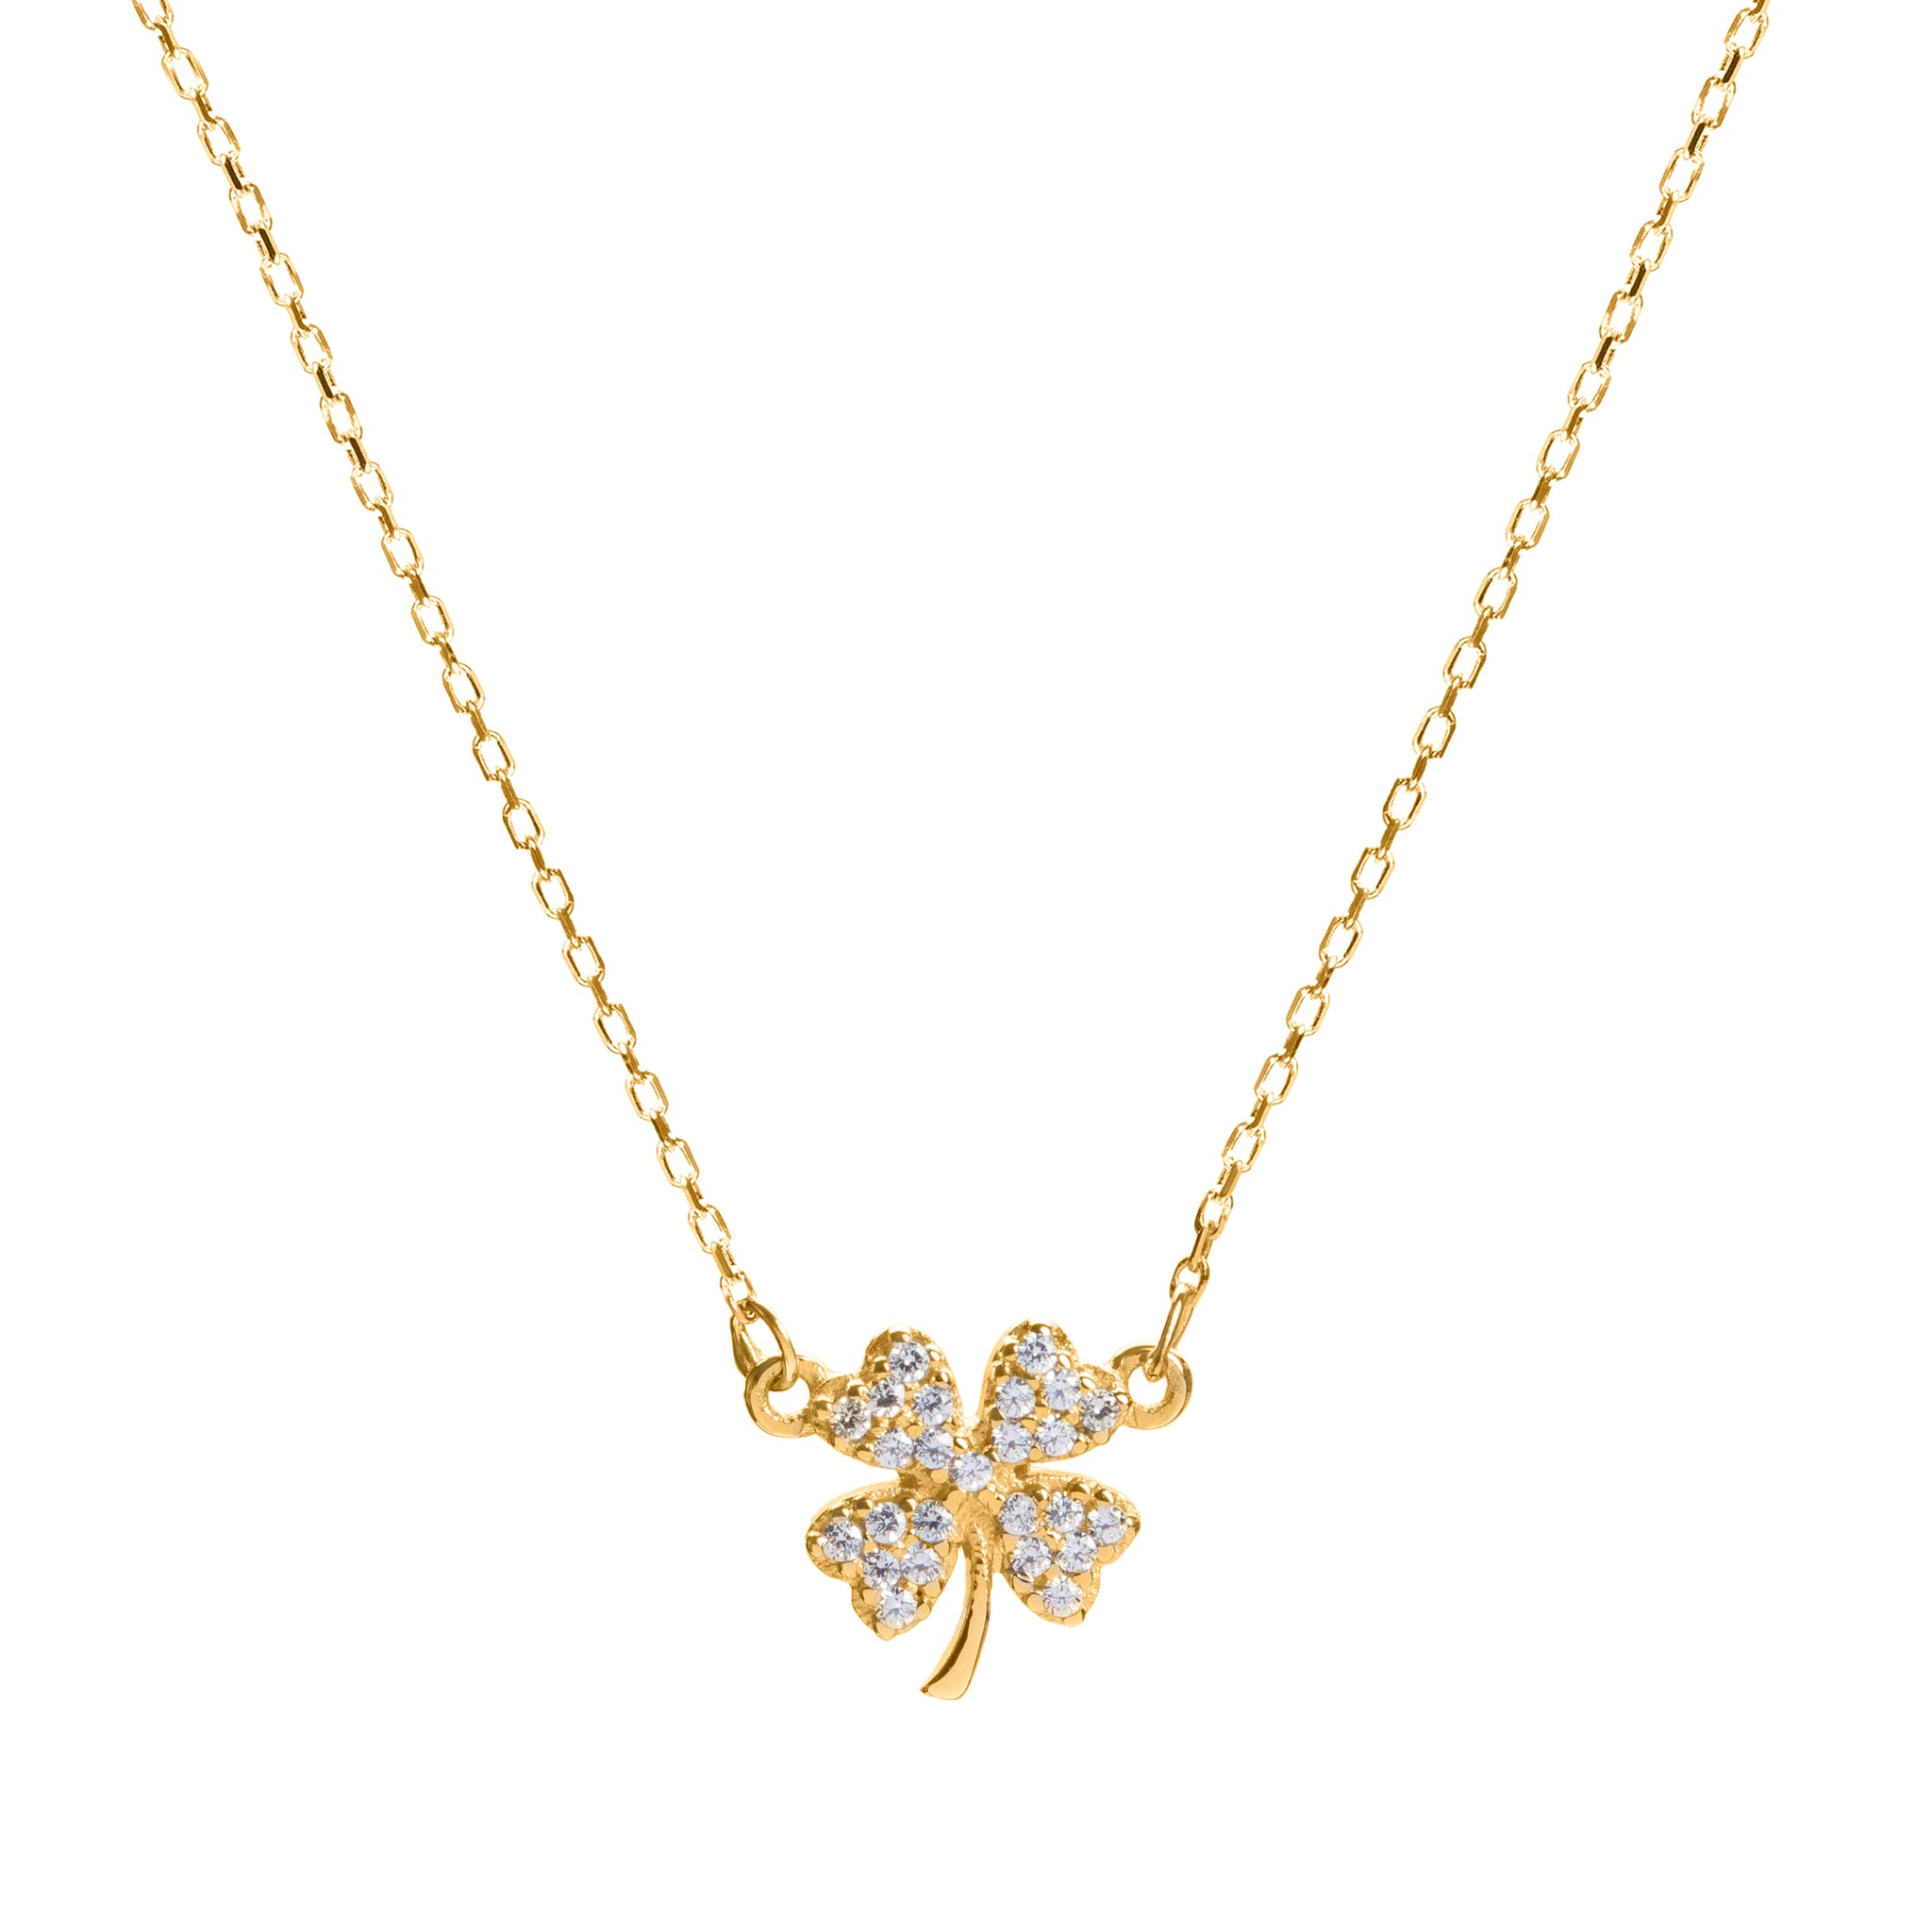 Luck gold necklace